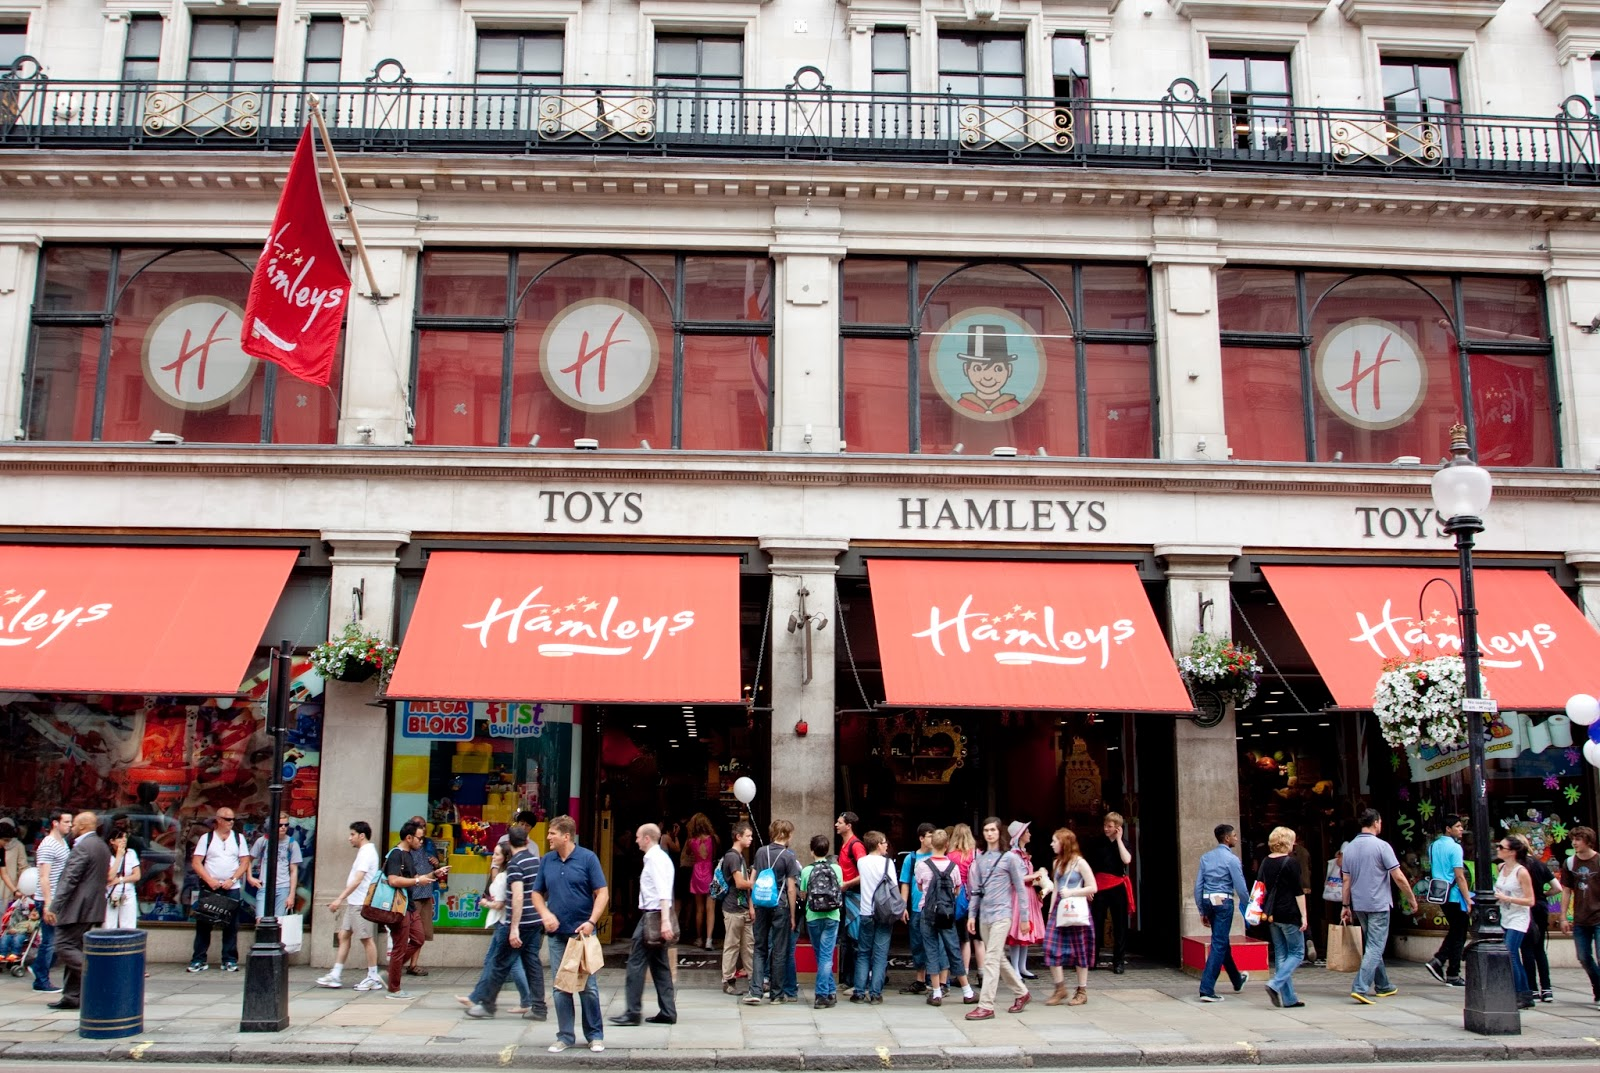 Toys From Hamleys : Lizz chloe s official world largest toystore